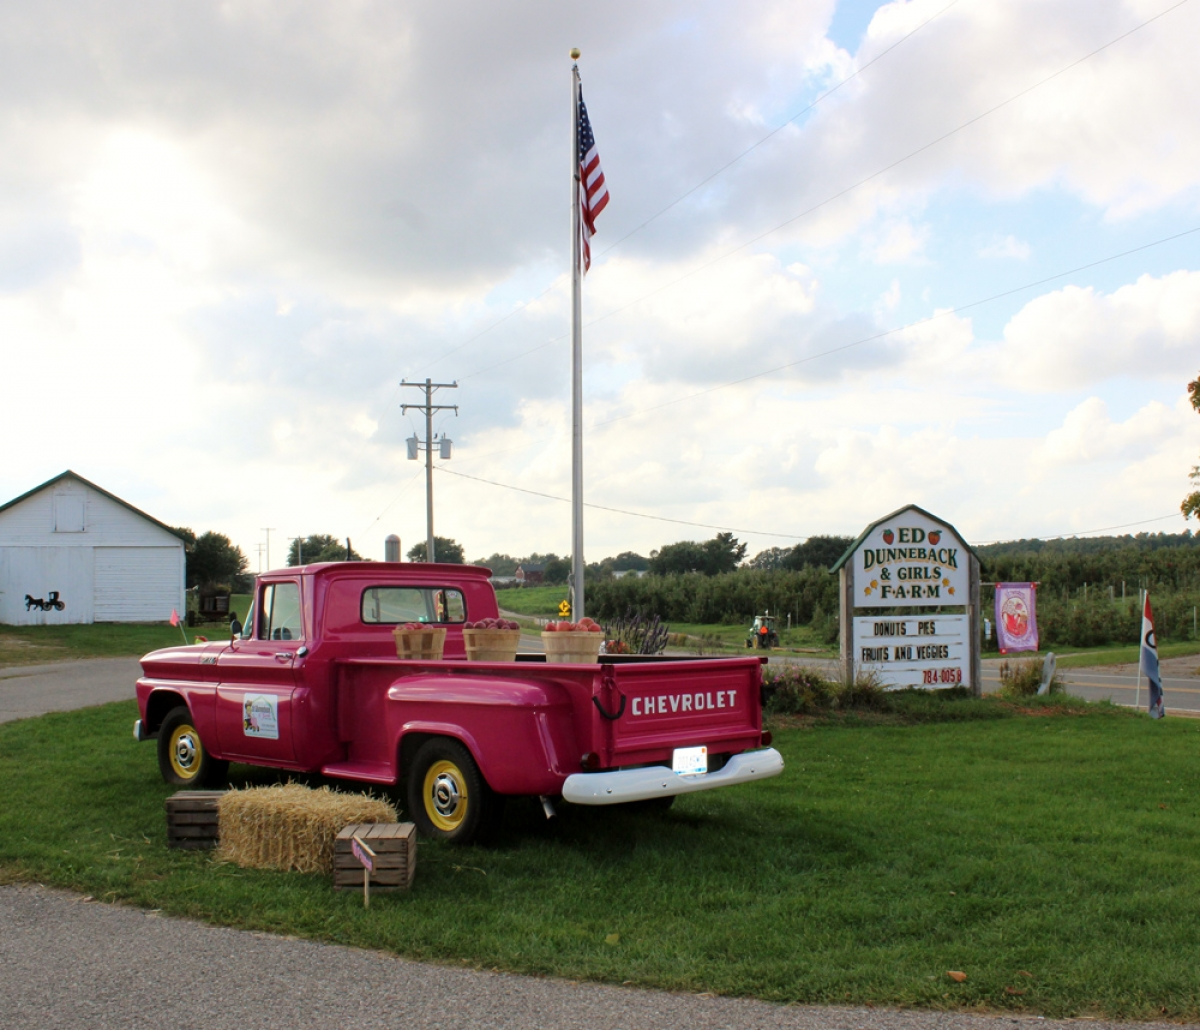 Pending approval of a microbrewery license and small winemaker's license from the Michigan Liquor Control Commission, Ed Dunneback & Girls Farm Market expects to begin brewing by Aug. 1.